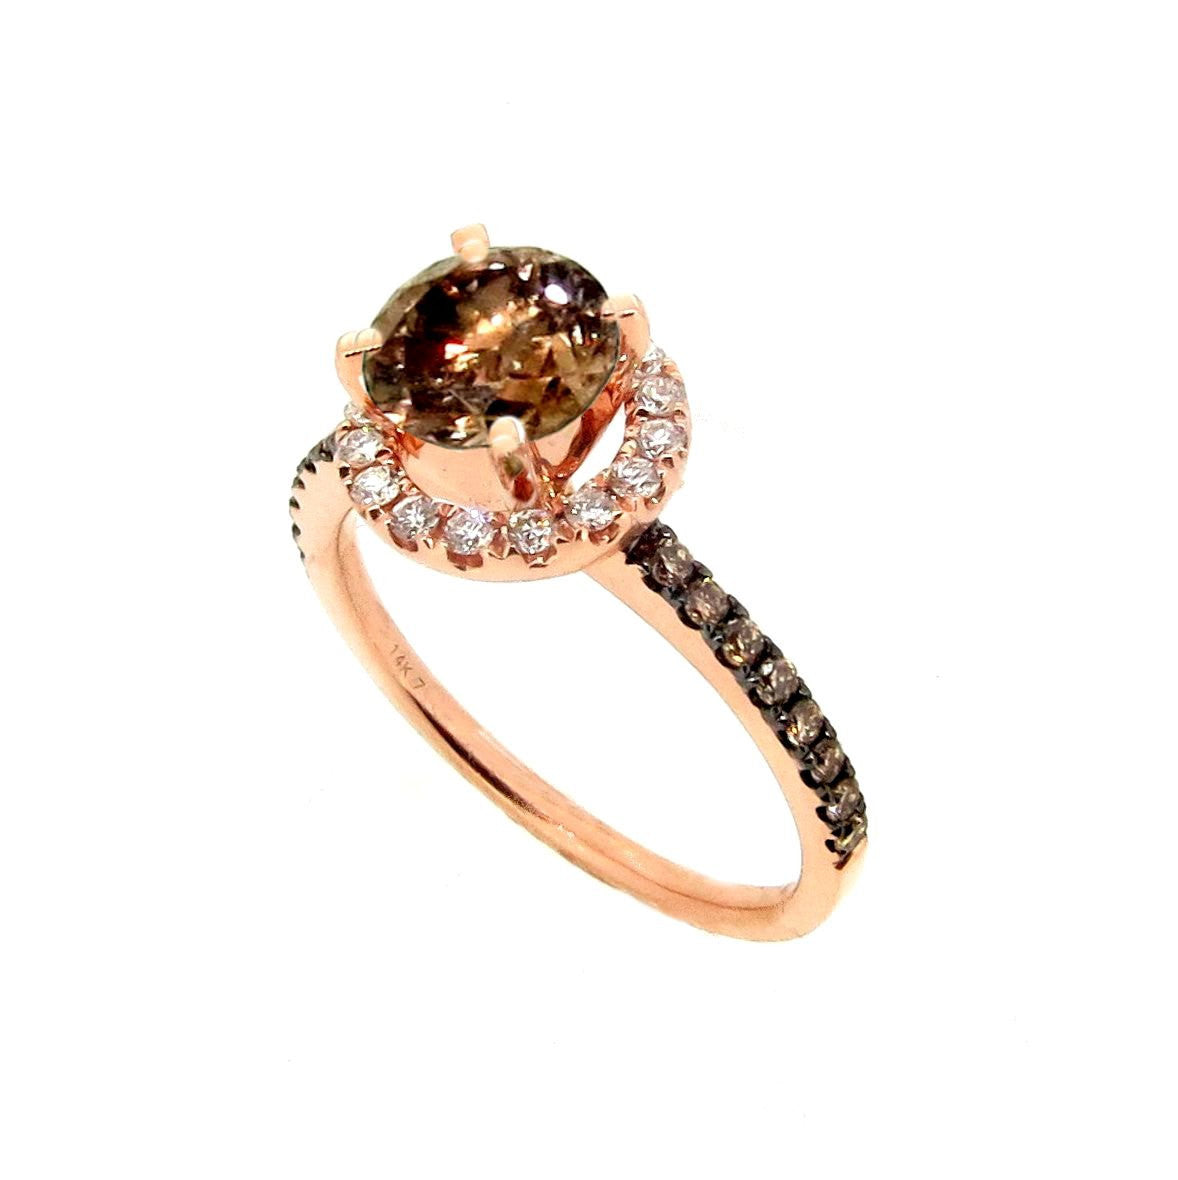 1 Carat Fancy Brown Smoky Quartz Halo, White Diamond Accent Stones, Rose Gold, Engagement Ring, Anniversary Ring - SQ94639A